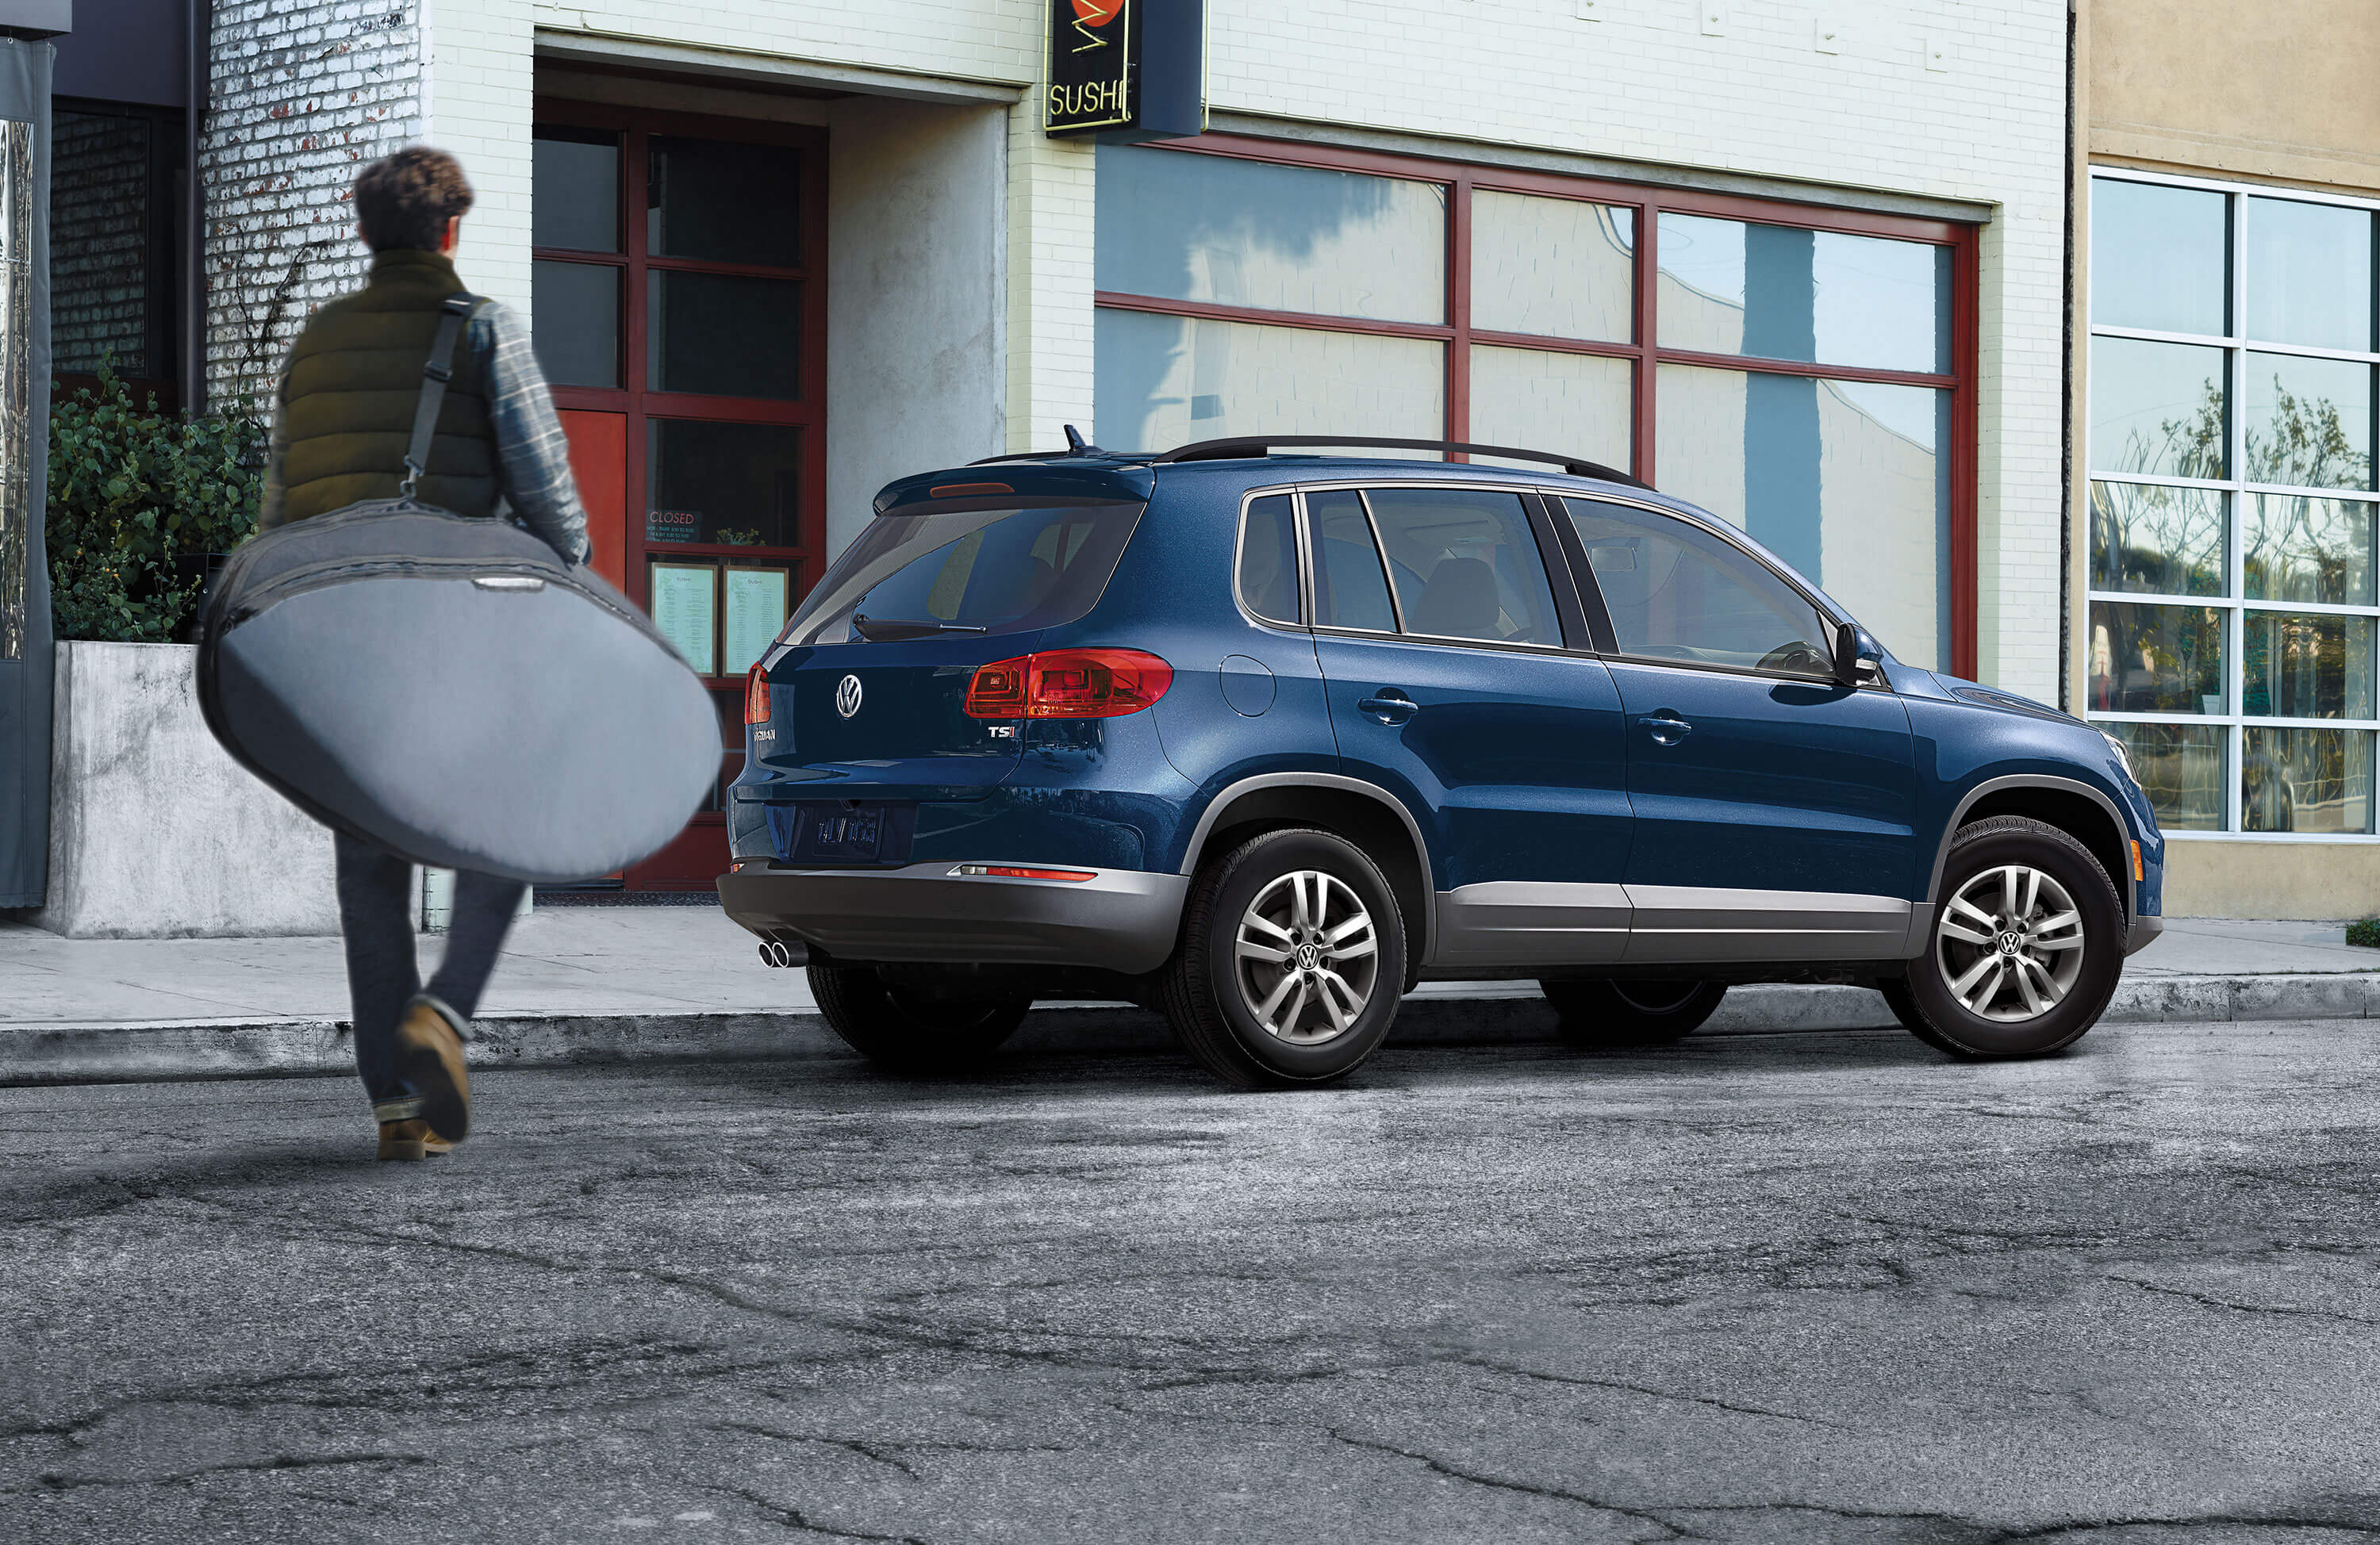 vw gallery cars future tiguan suv photo all volkswagen new gym to the carscoops sends